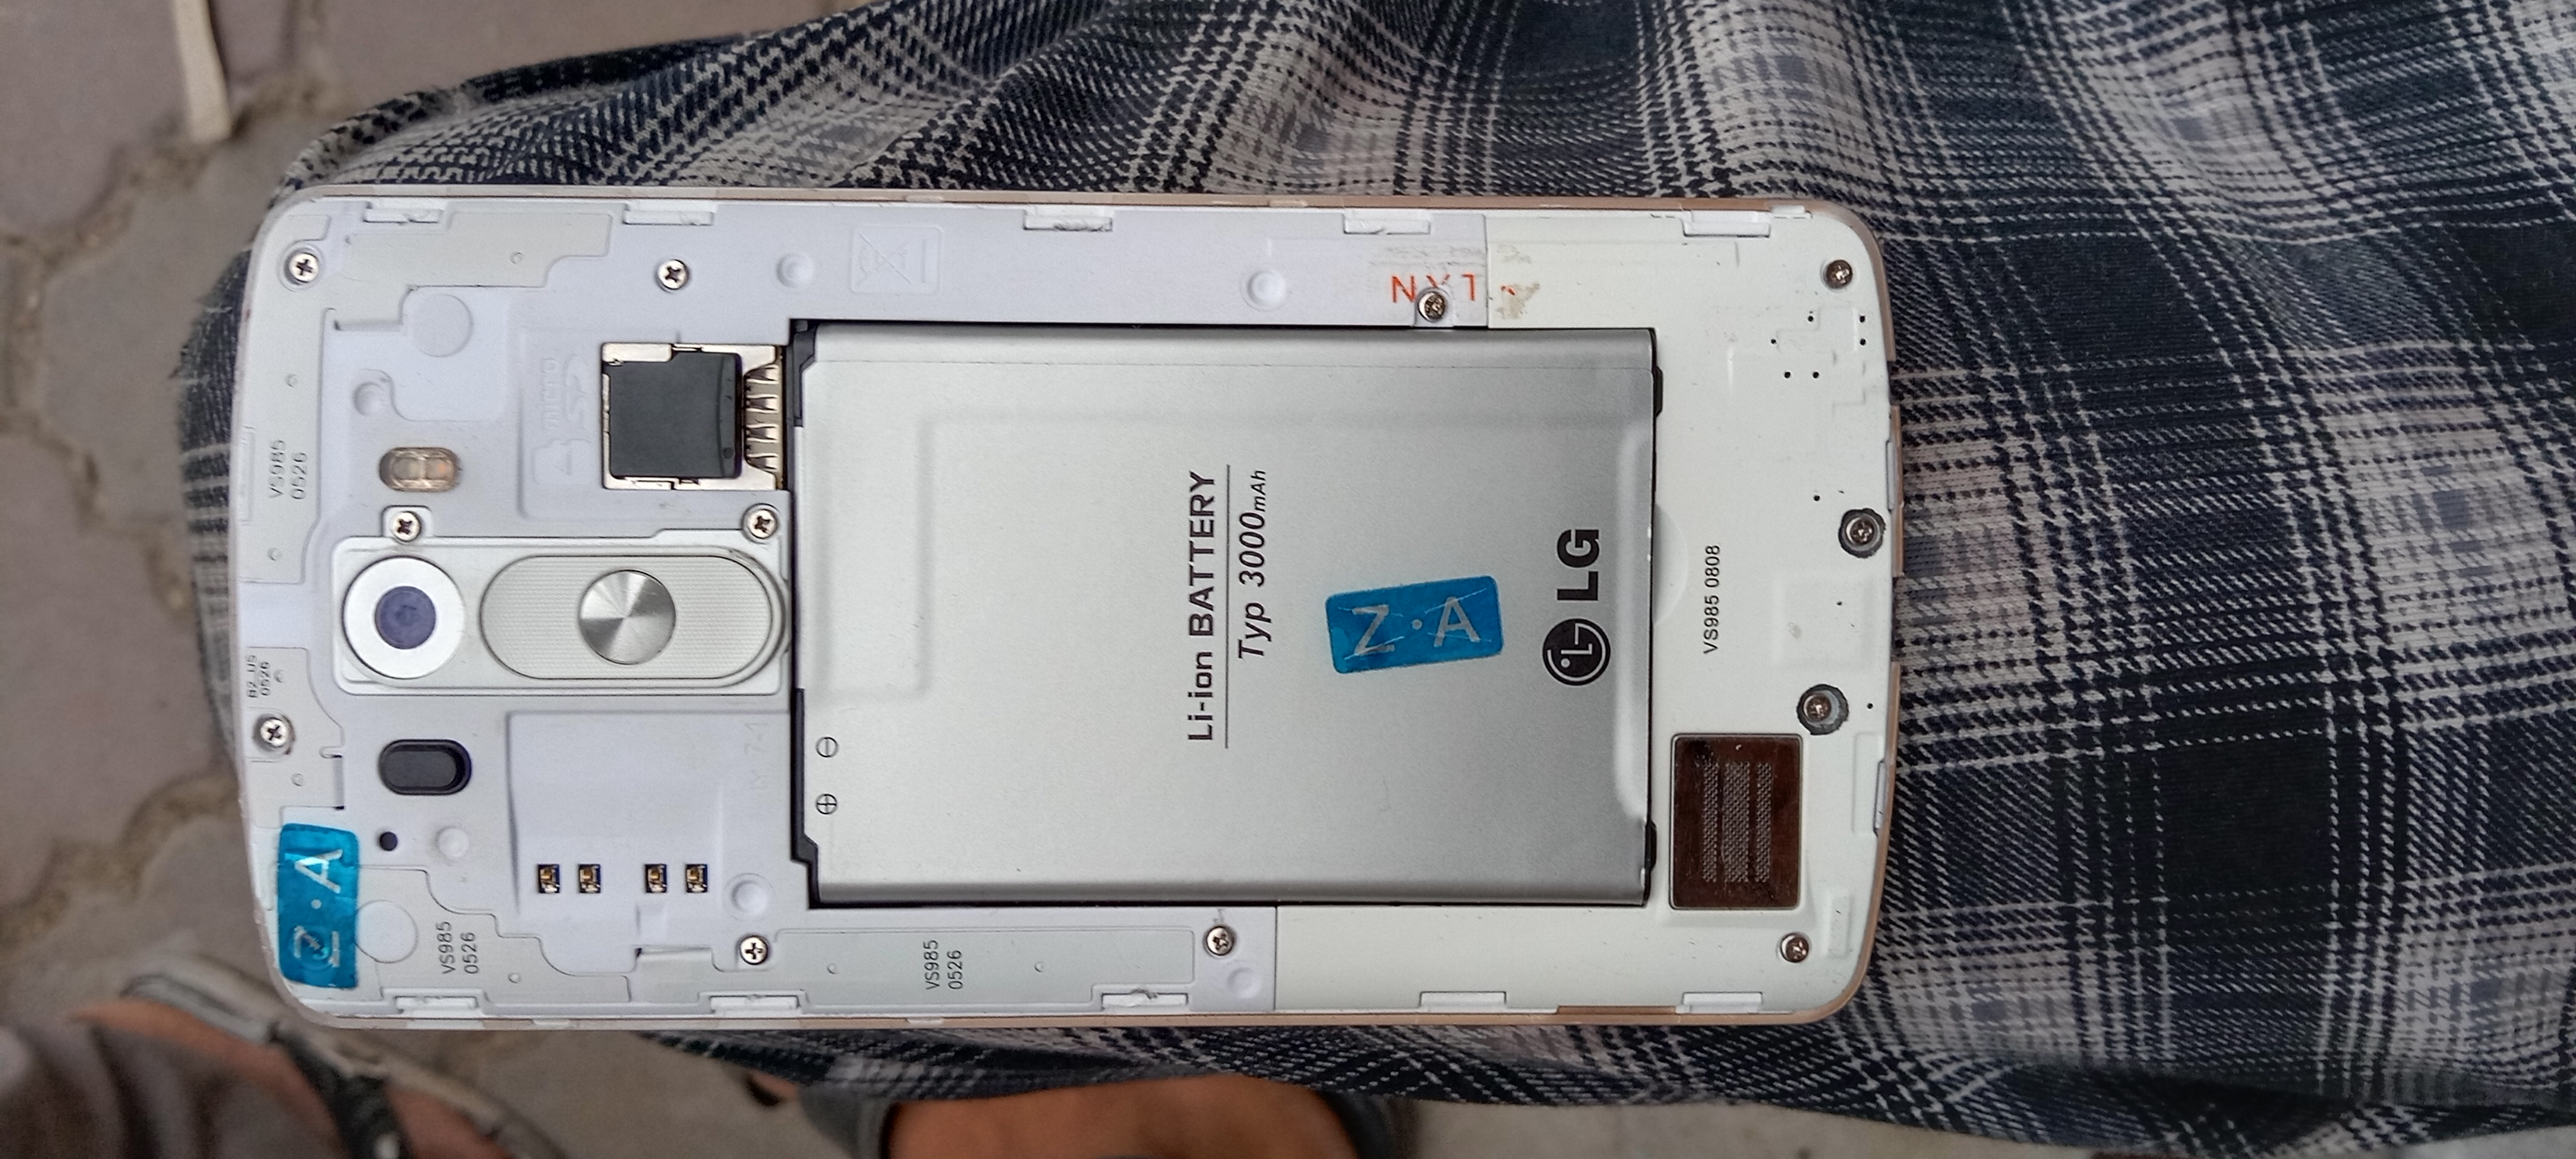 Sell LG mobile - photo 3